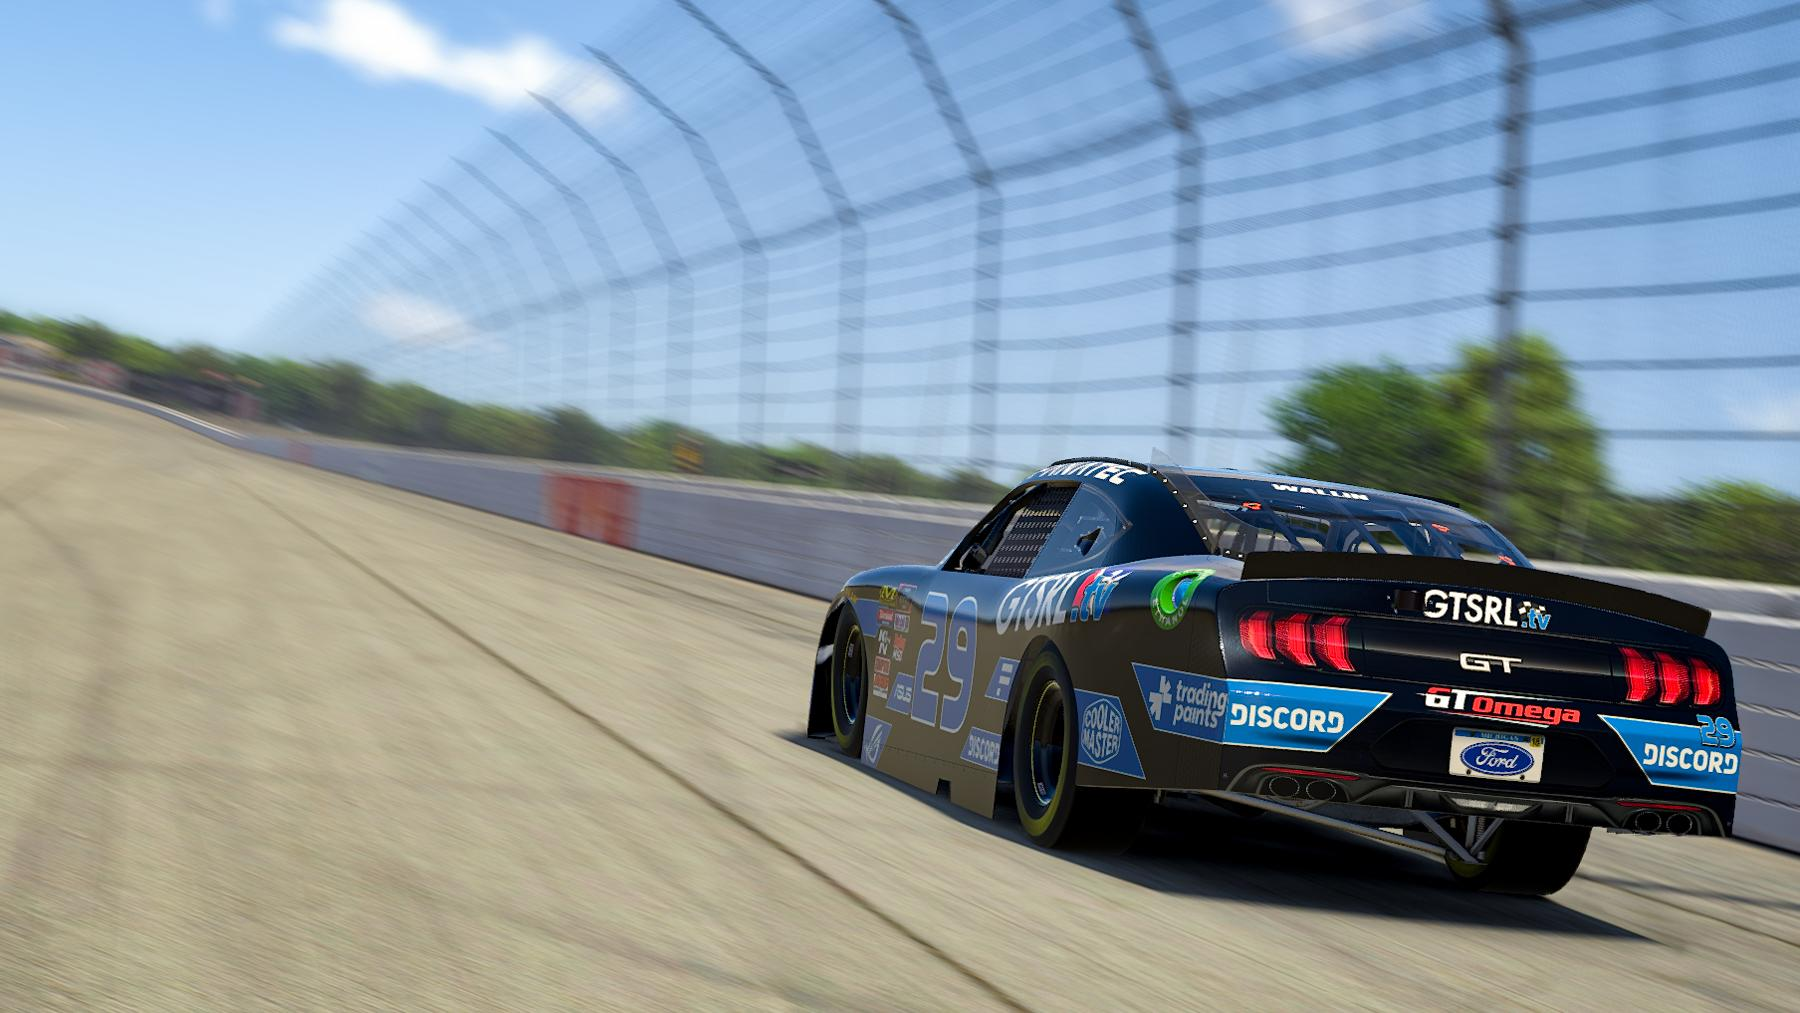 Preview of GTSRL NASCAR B Class Mustang by Vincent W.